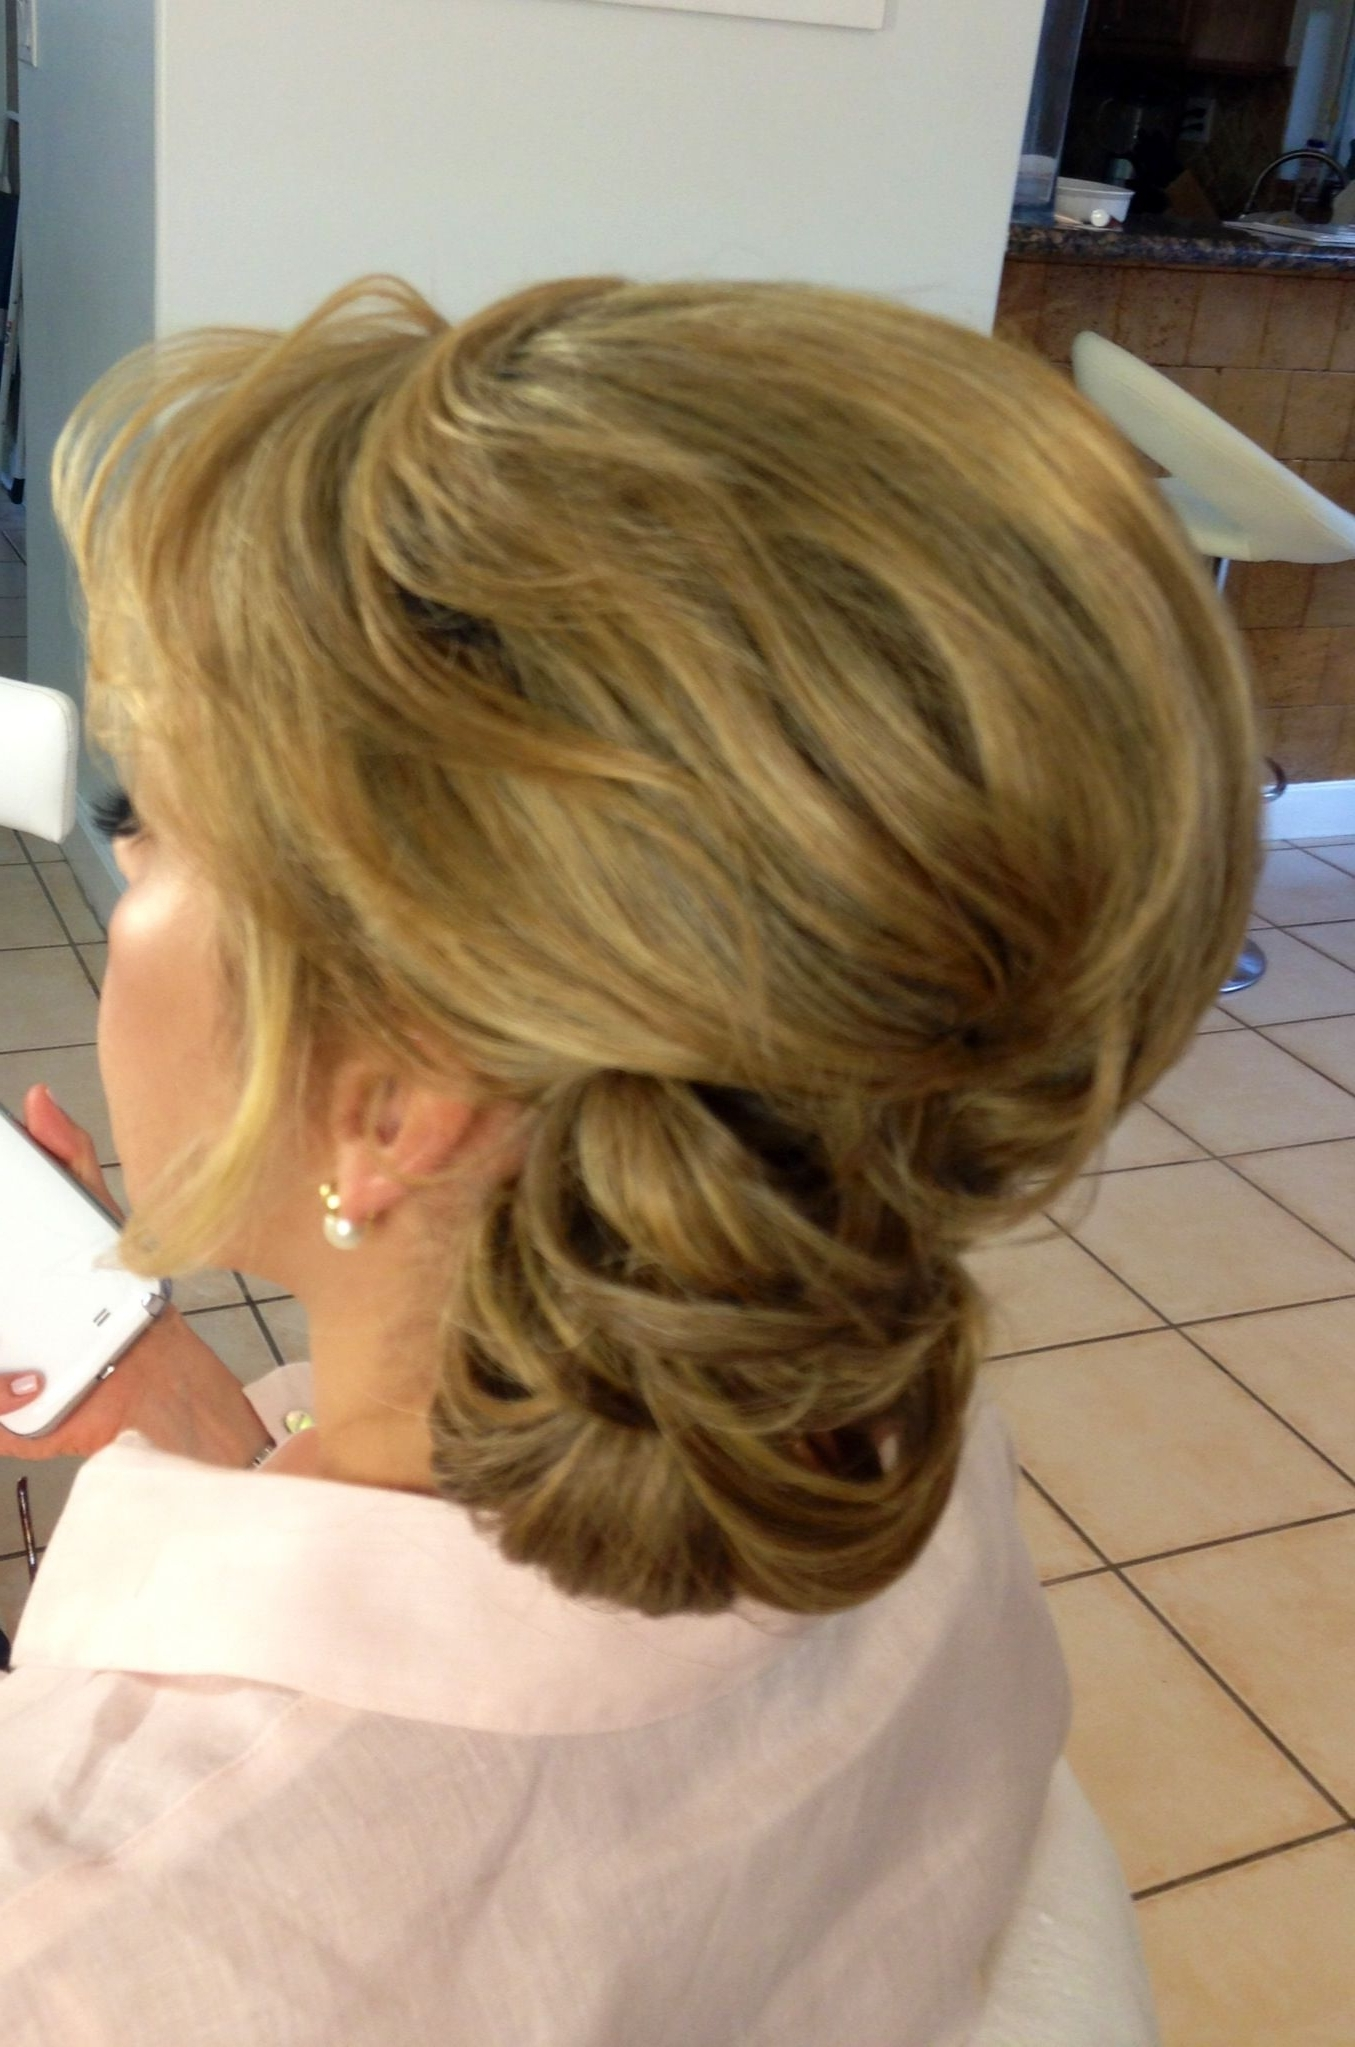 The Mother Of The Bride #hair #bride #updo #momupdo #mom With Famous Mother Of The Bride Updo Wedding Hairstyles (View 13 of 15)